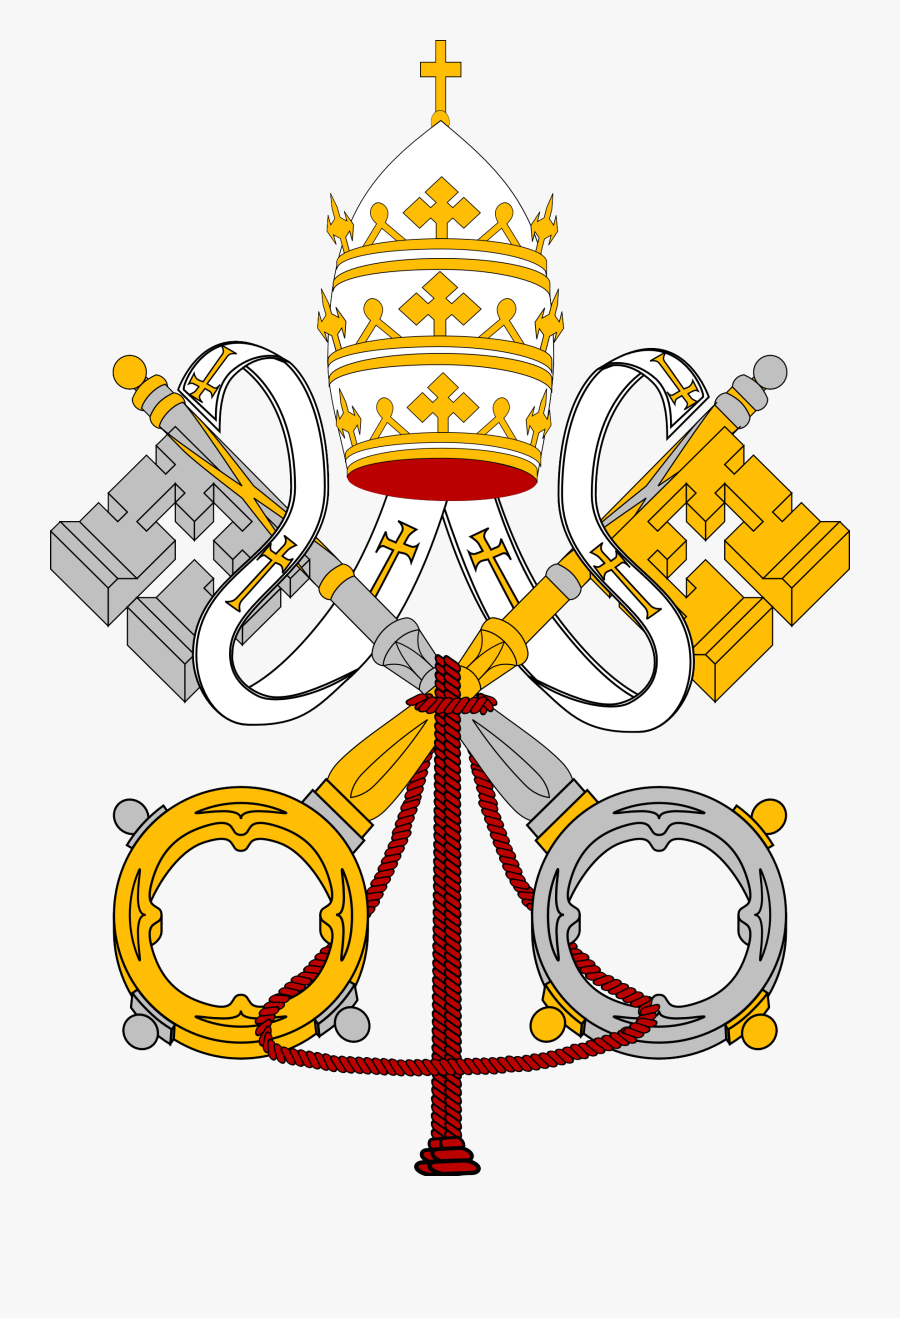 Papal - Coats Of Arms Of The Holy See, Transparent Clipart